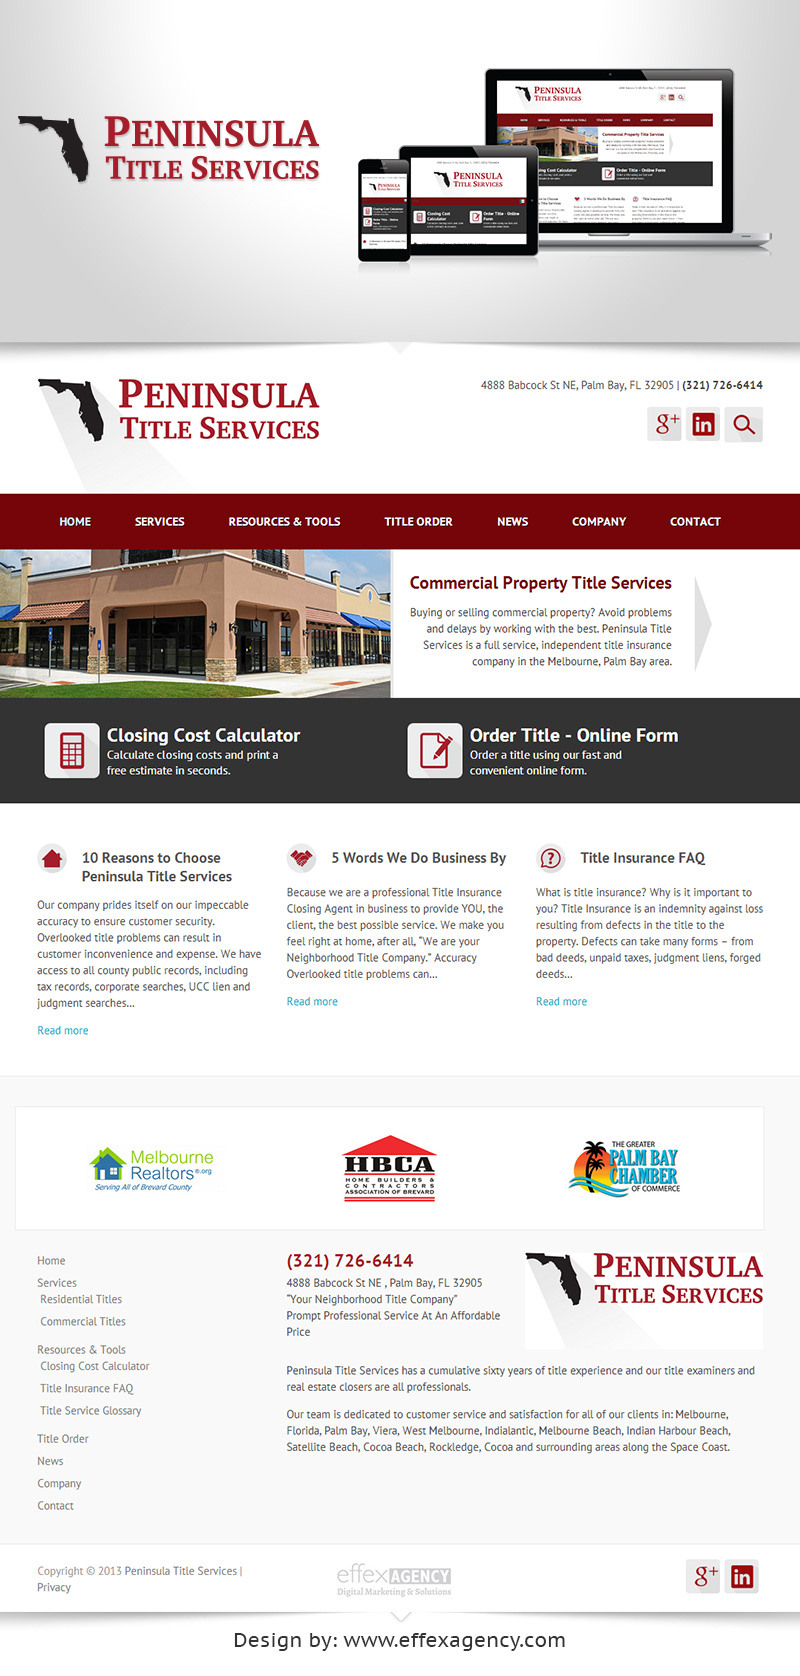 Responsive web design for Peninsula Title Services in Melbourne, Florida